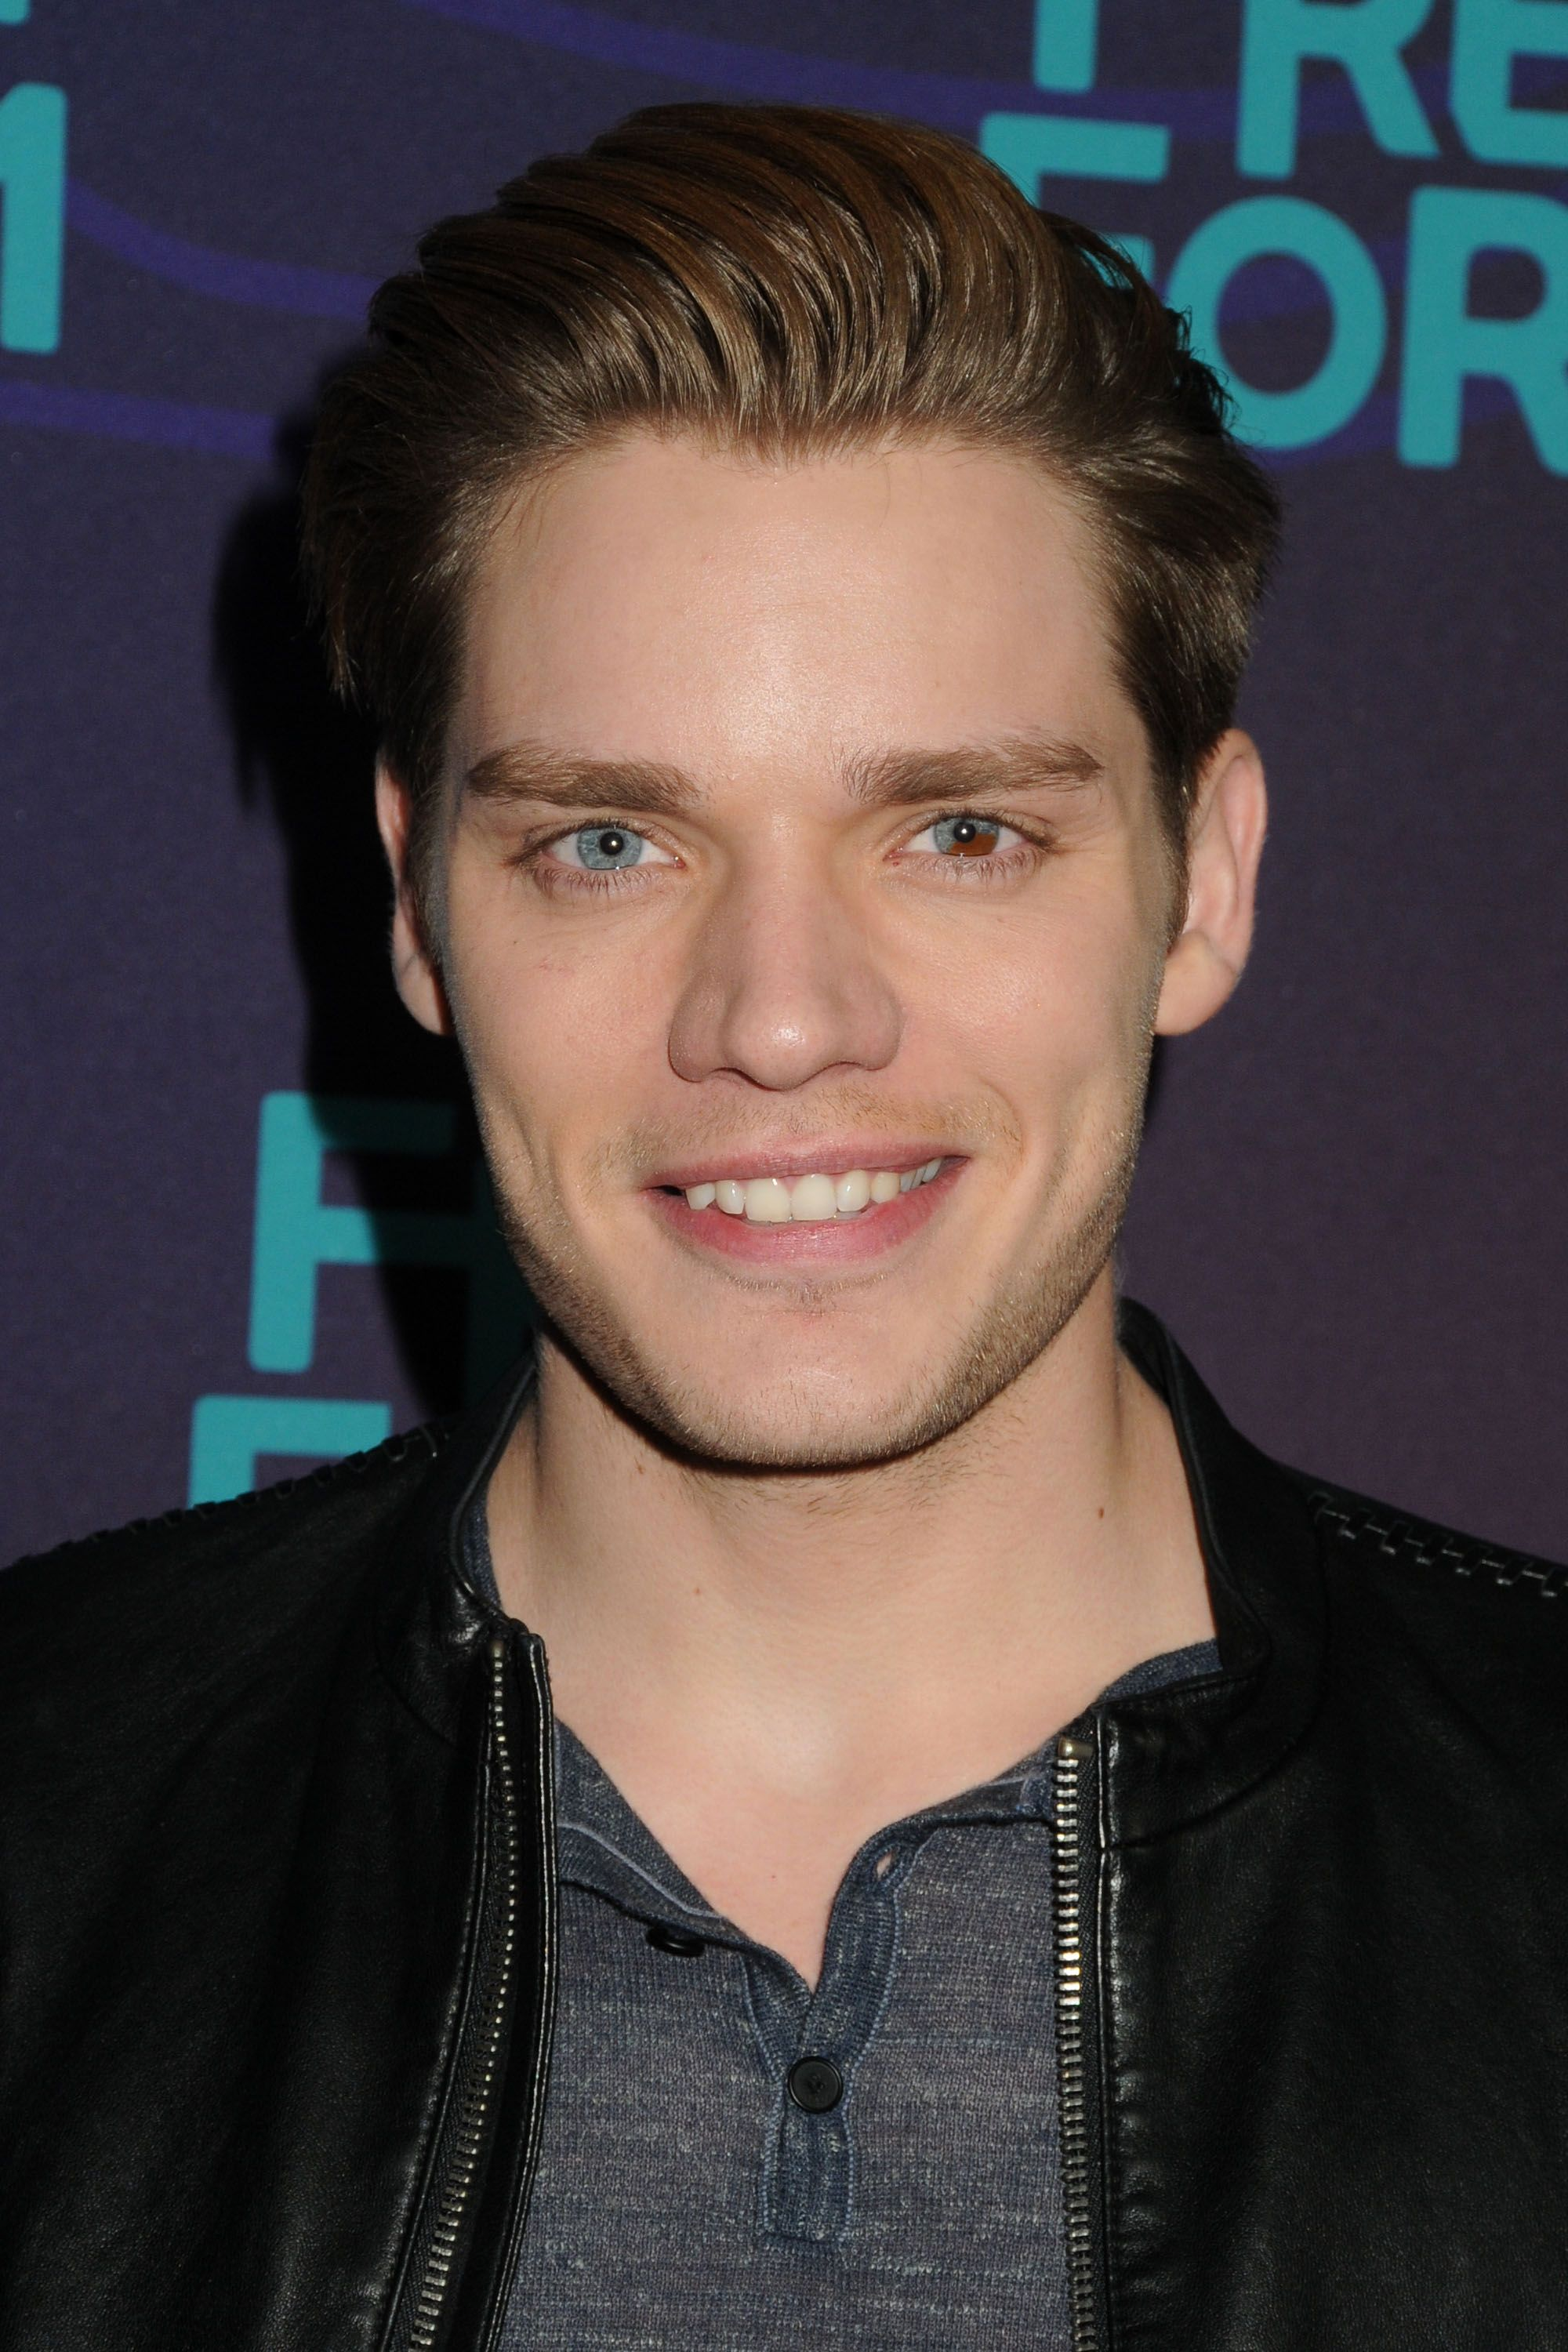 Dominic sherwood eyes